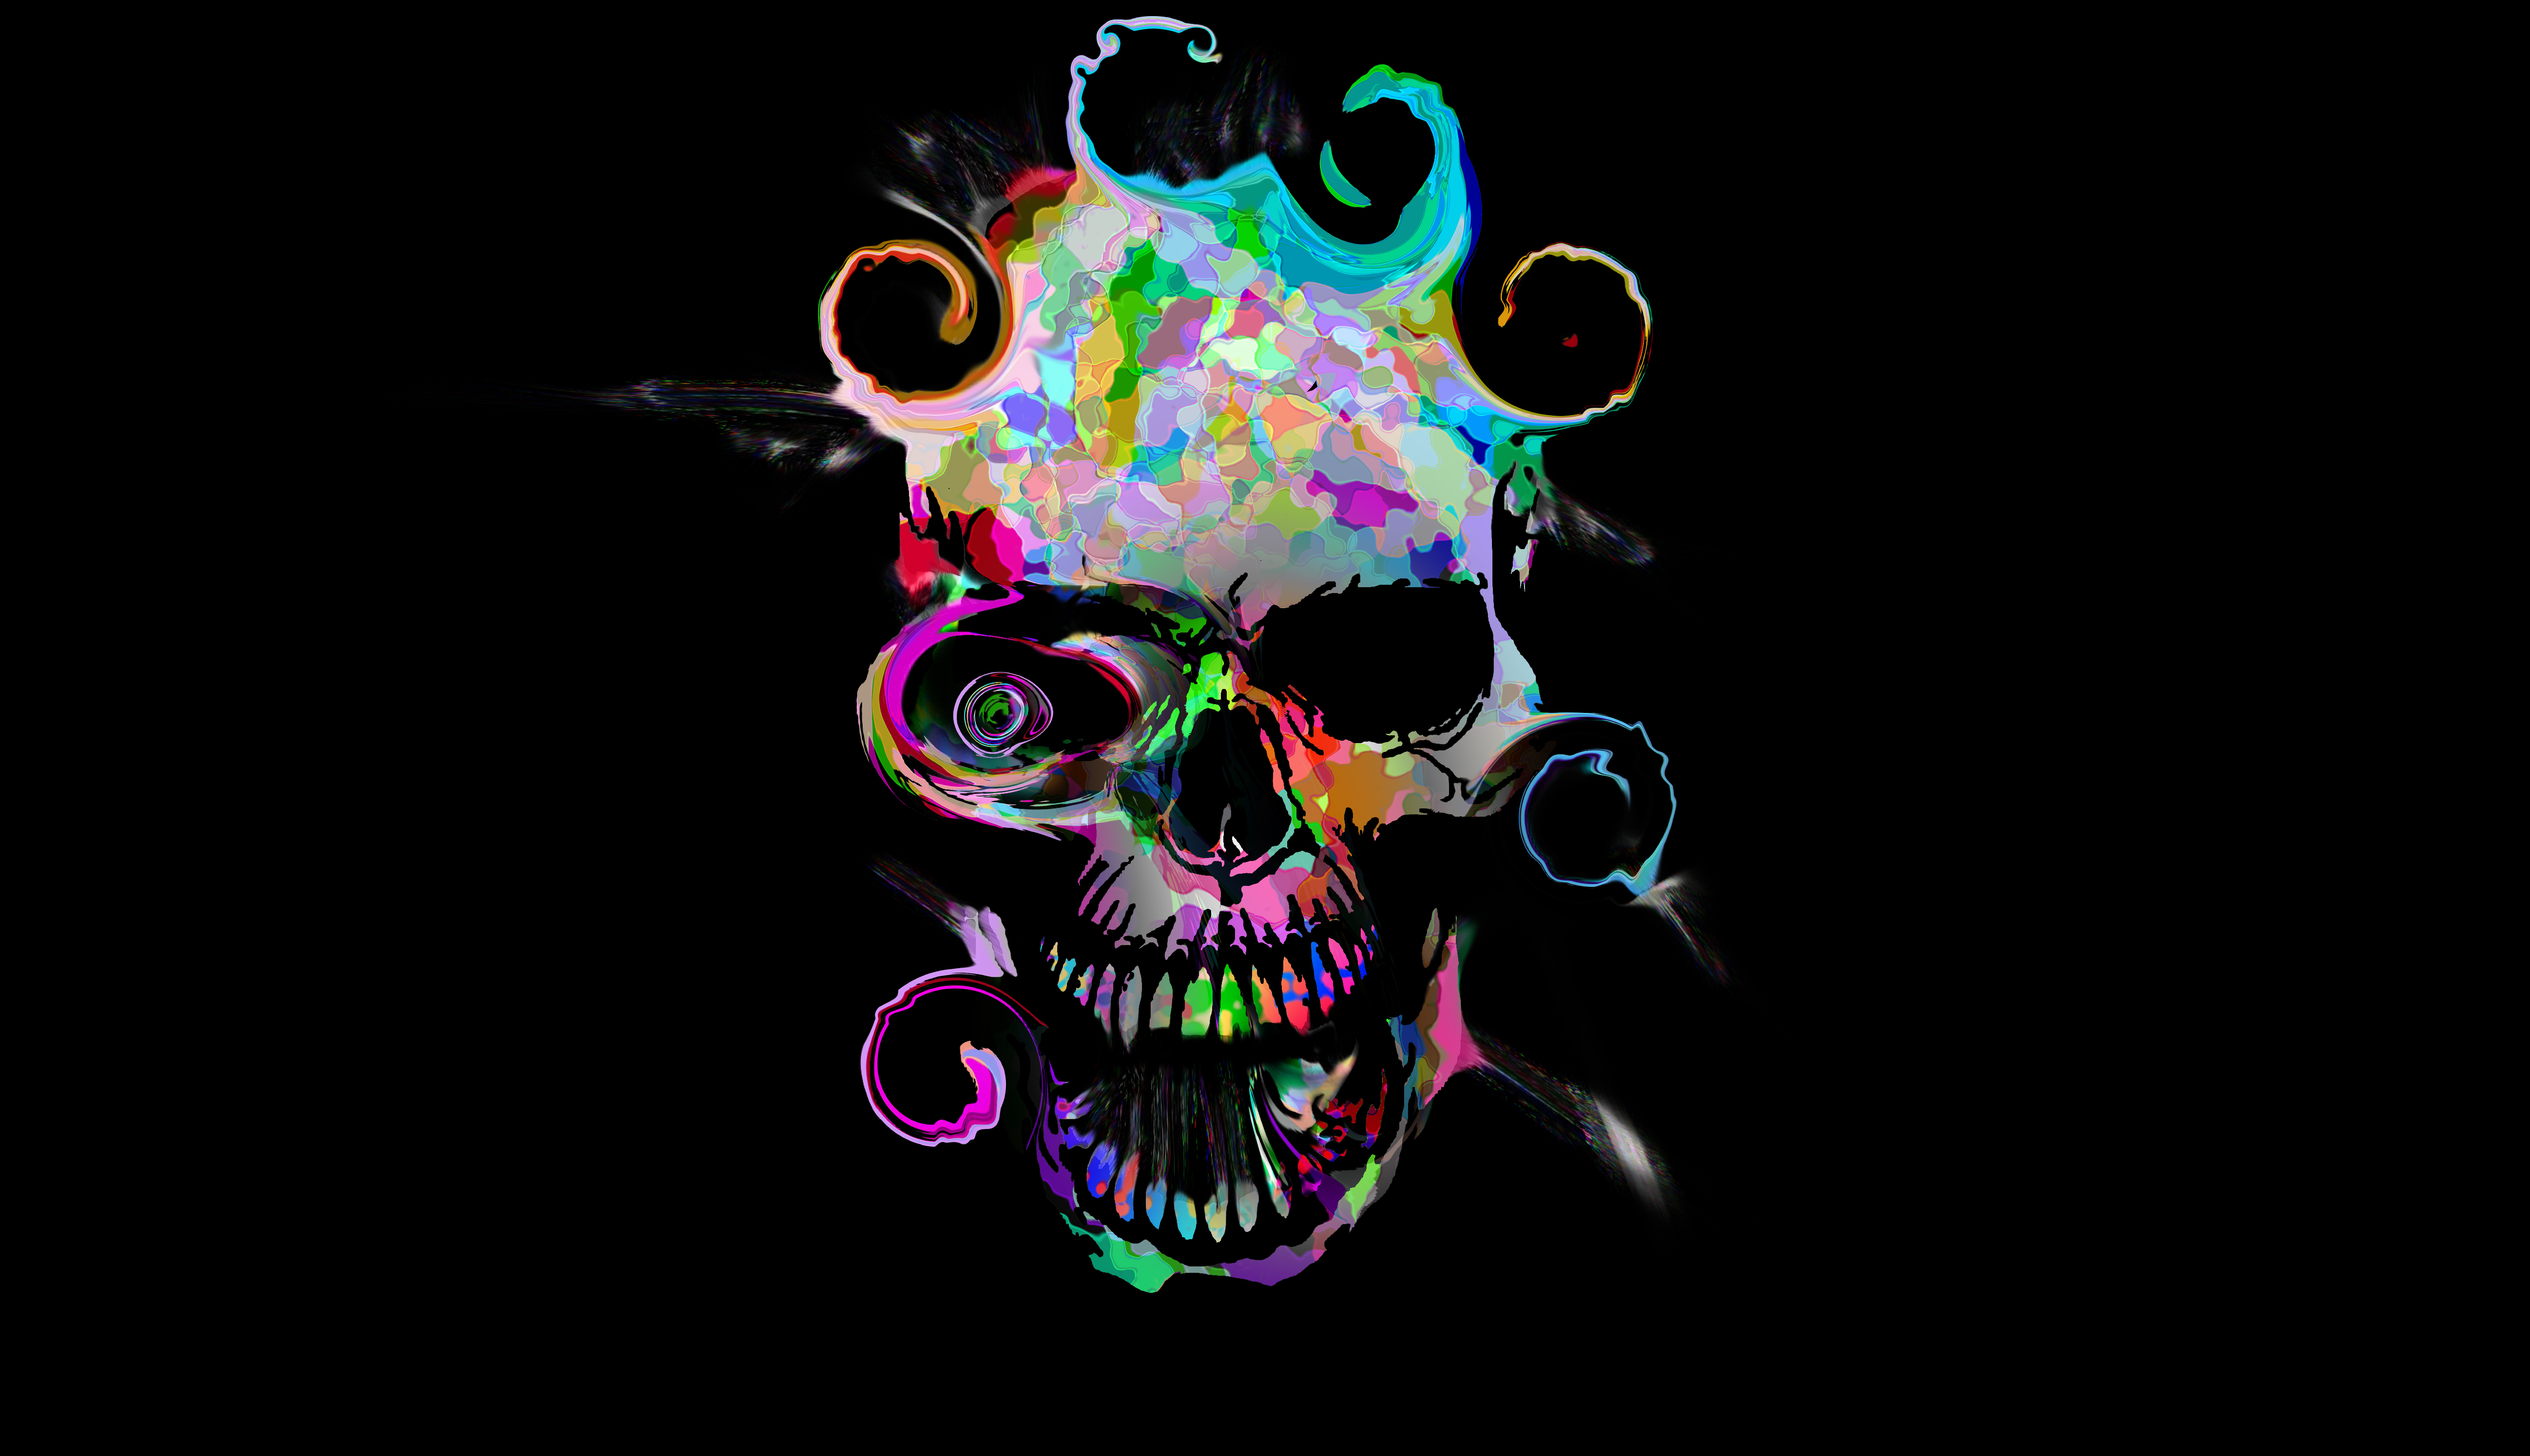 Artistic Colorful Skull, HD Artist, 4k Wallpapers, Images